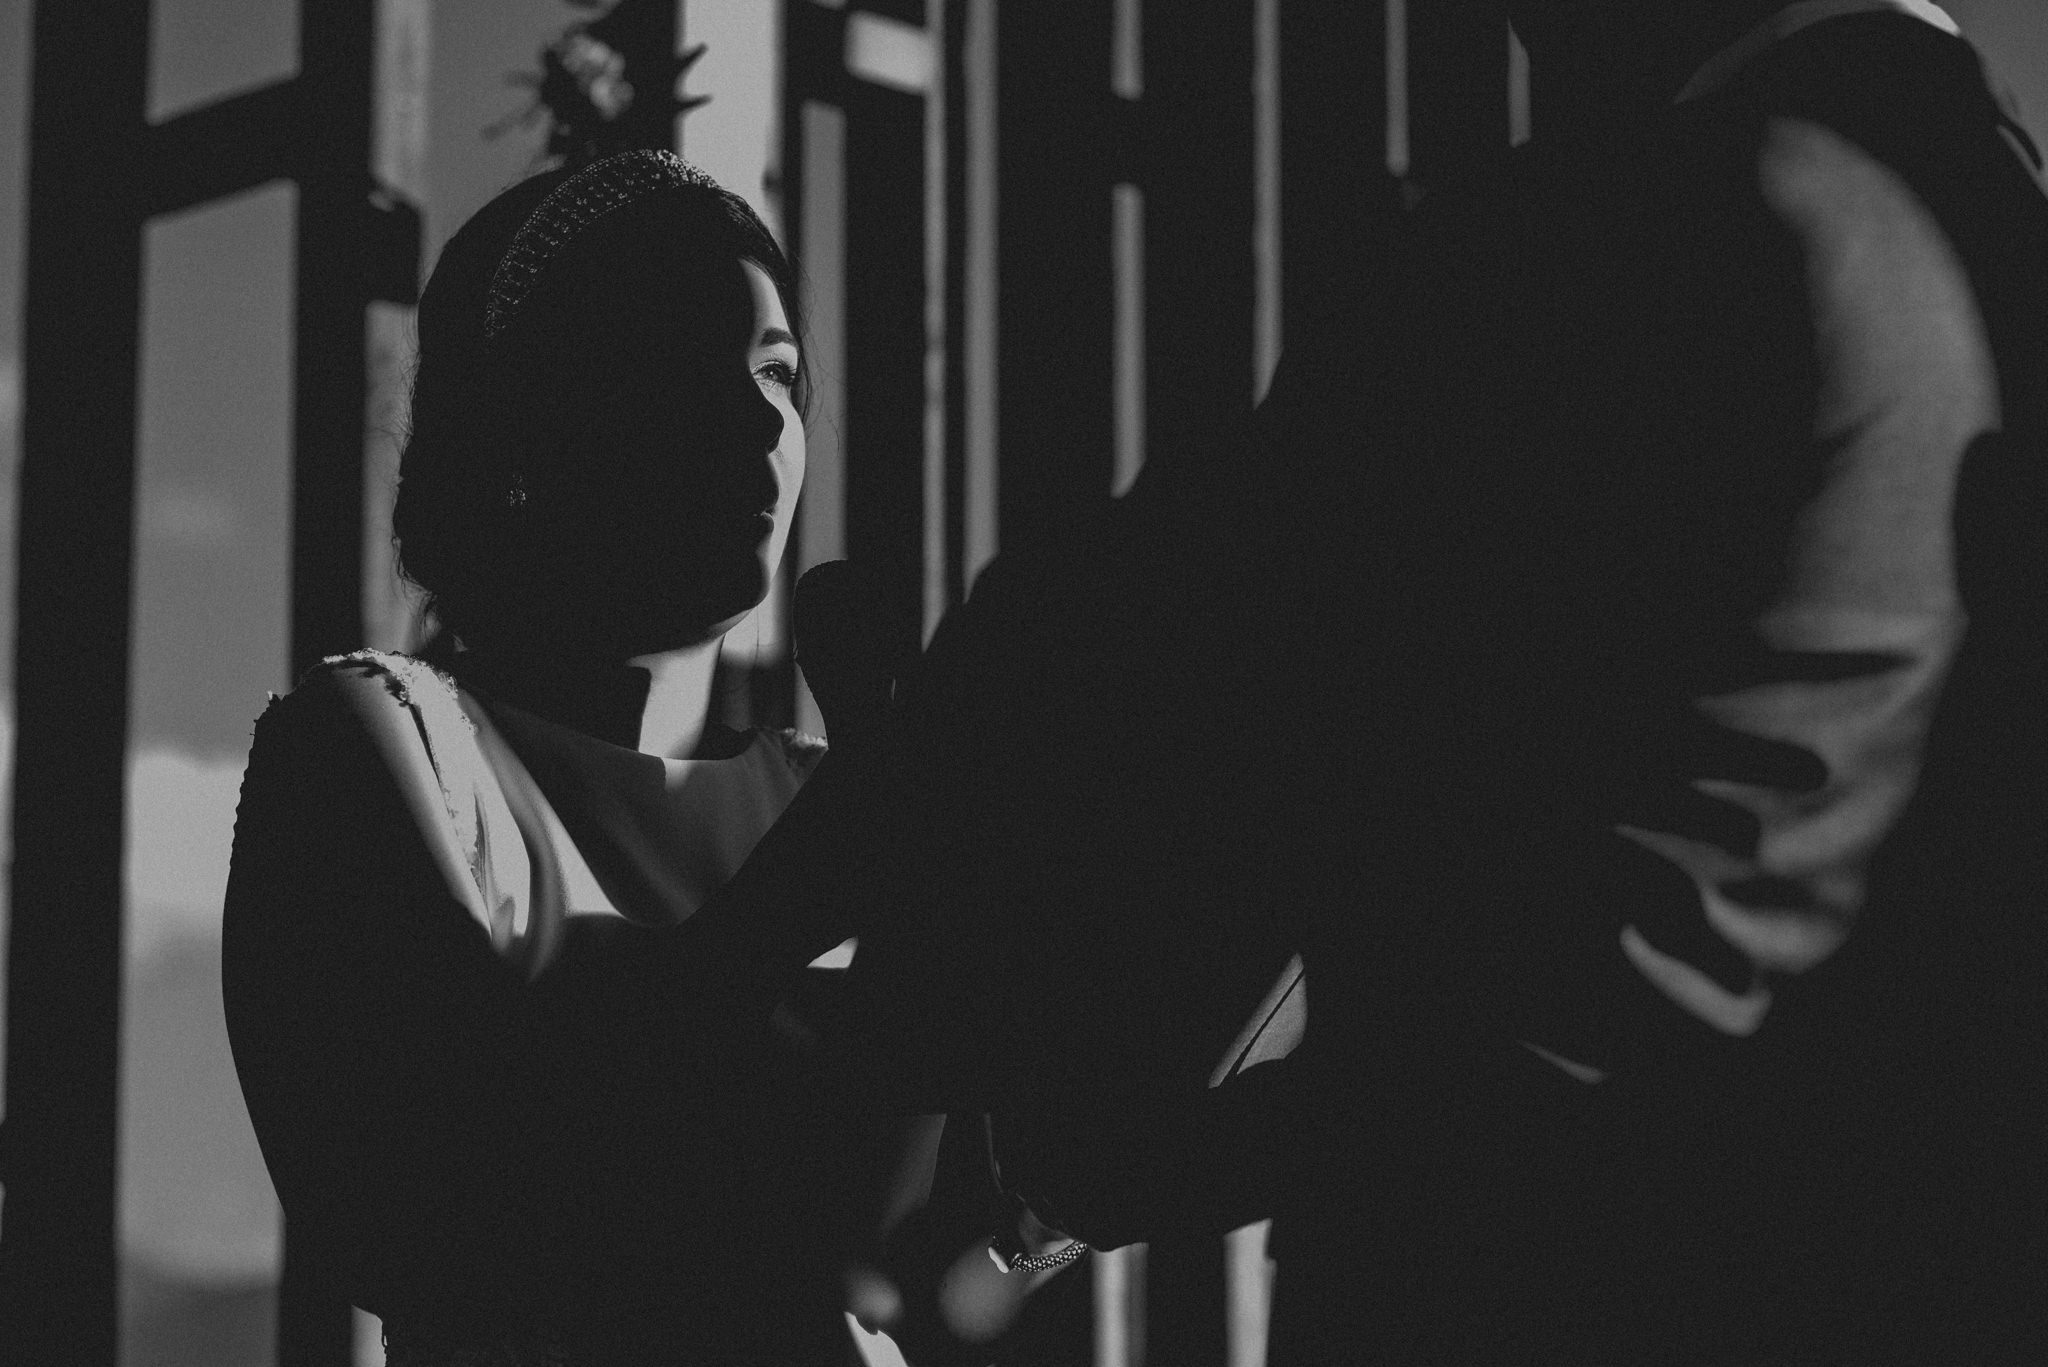 A bride making her vows with half her face enveloped in shadow and her eye in sunlight